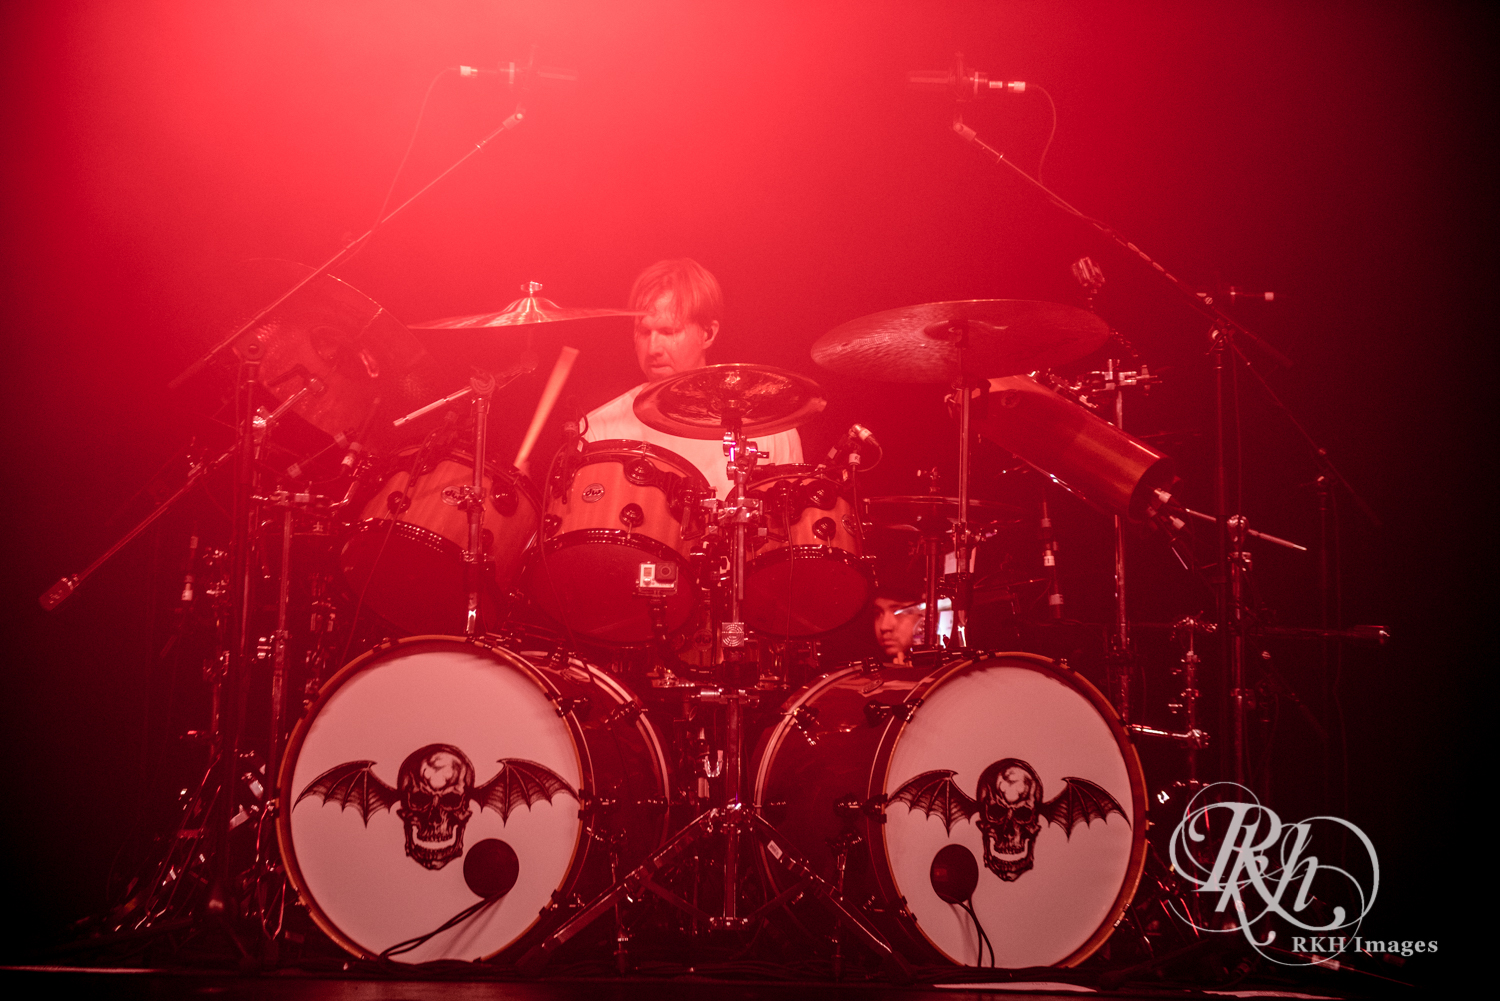 a7x rkh images (45 of 52).jpg